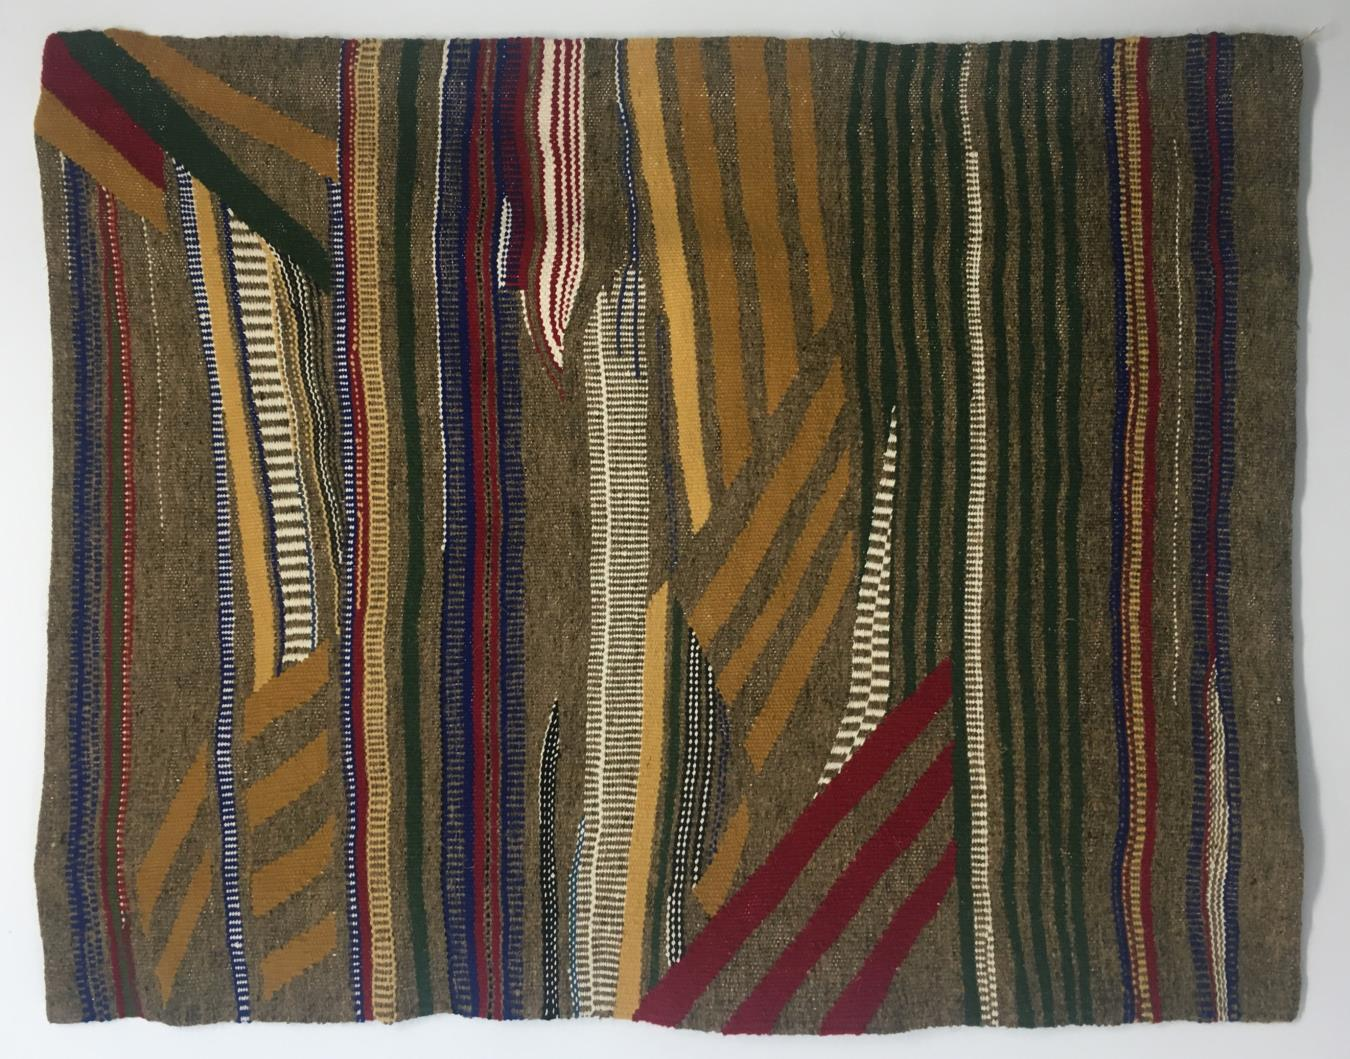 The Pattern of Patience Teresa Lanceta 2000 Cotton, wool and taffeta. 53.9 x 66.9 in (137 x 170 cm). 2021 Marc Straus Gallery